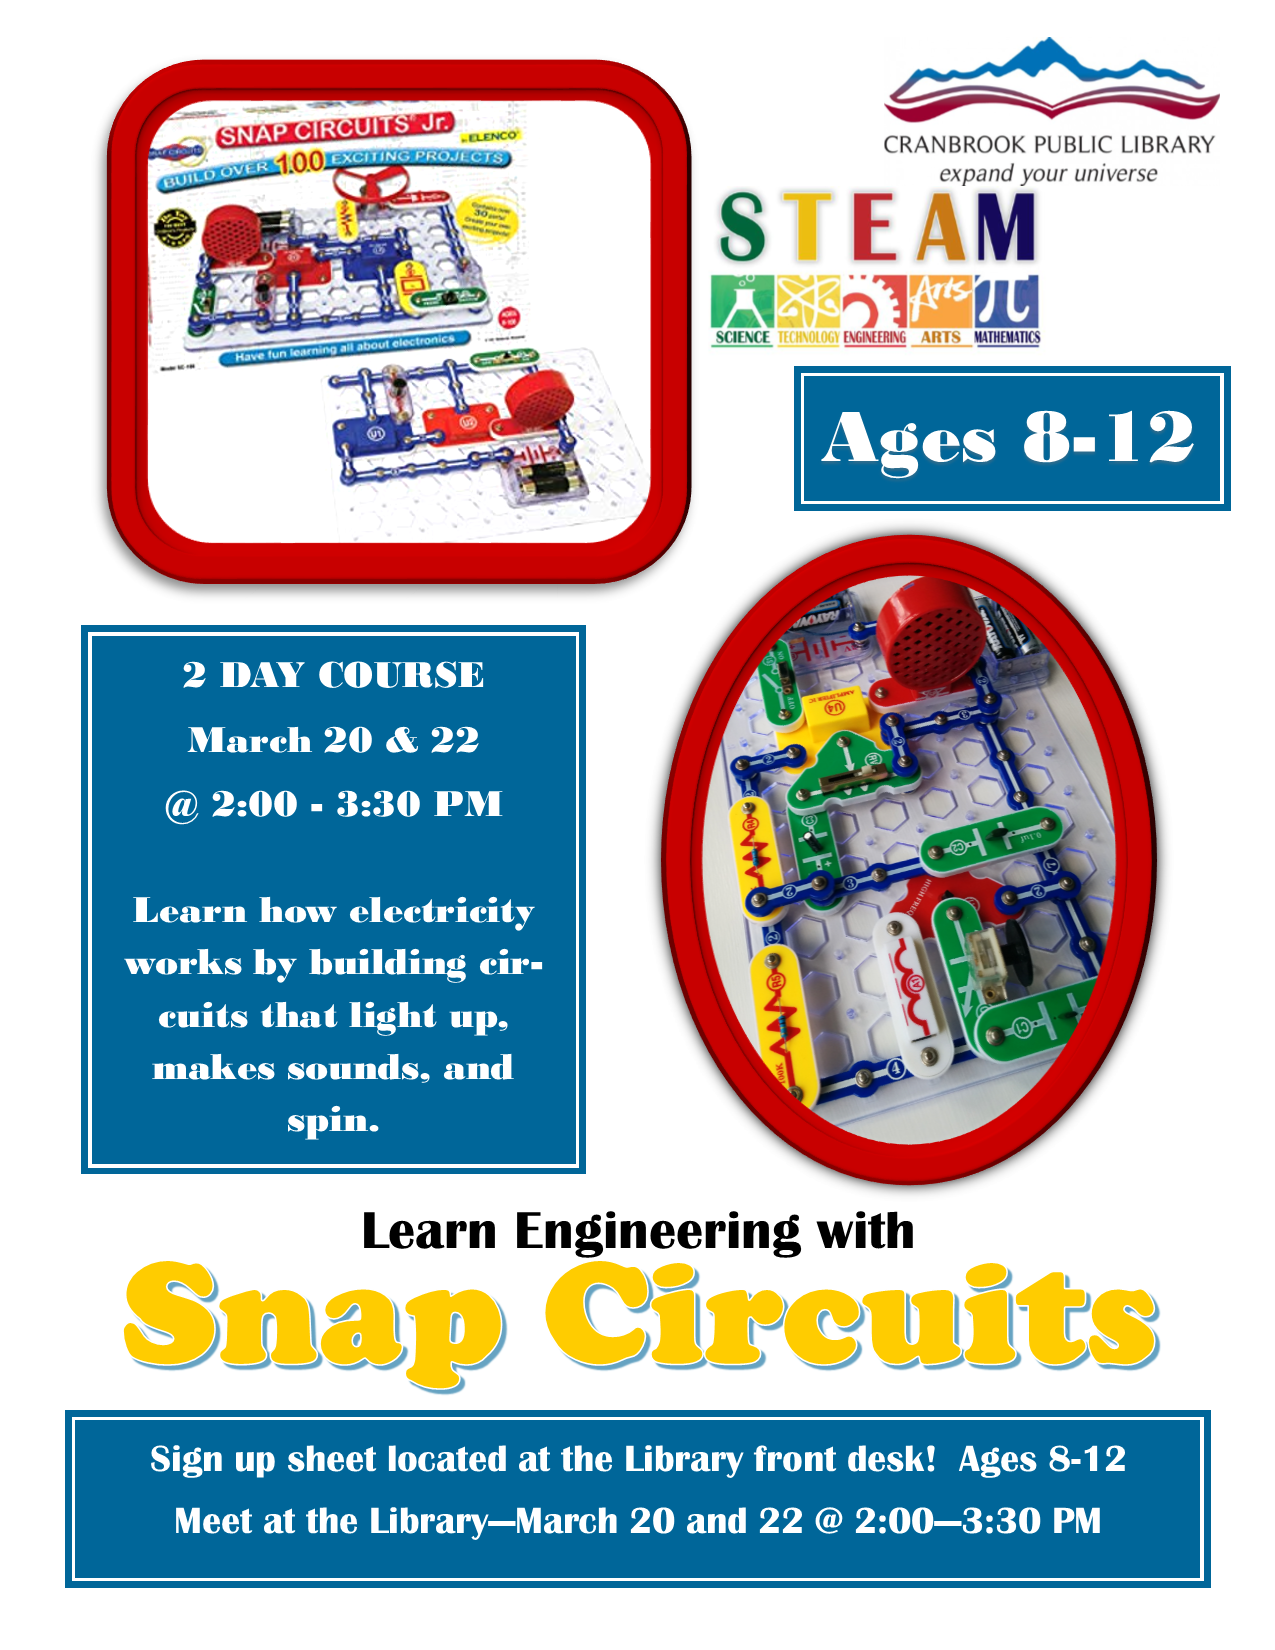 Learn Engineering with Snap Circuits Jr. (Ages 8-12) @ Cranbrook Public Library